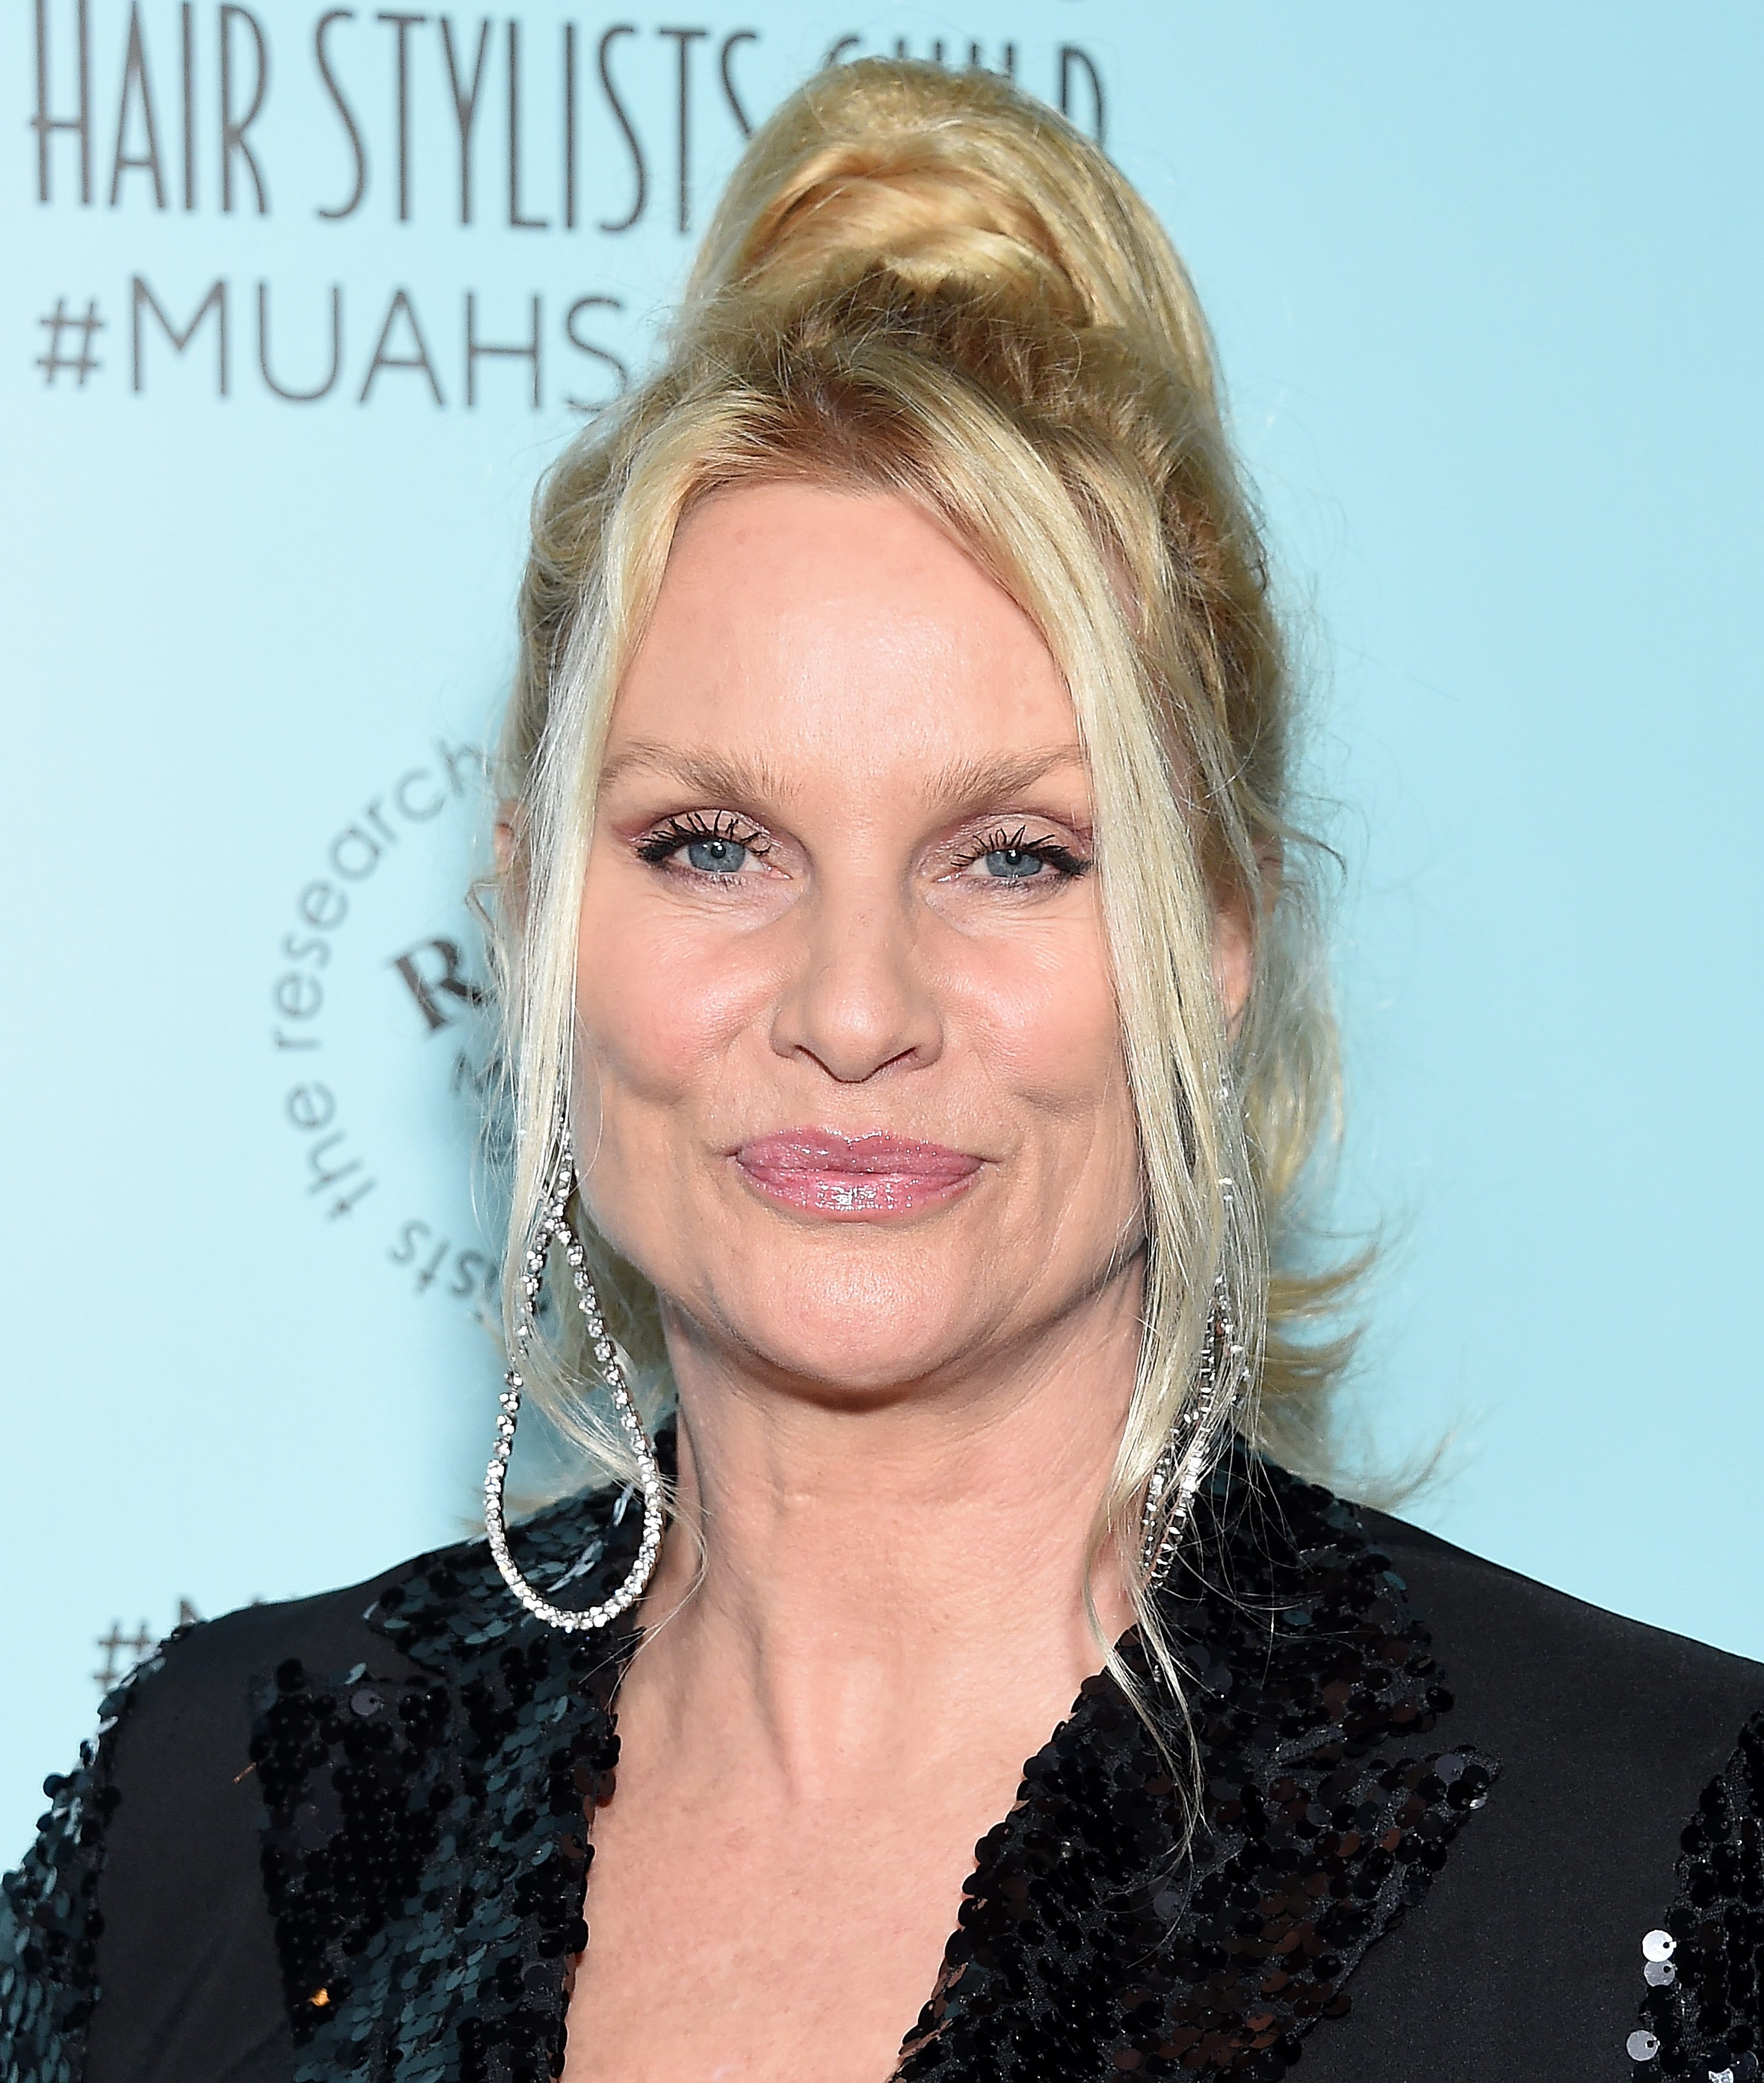 Nicollette Sheridan talks admissions scandal, avoids mentioning co-star Felicity Huffman